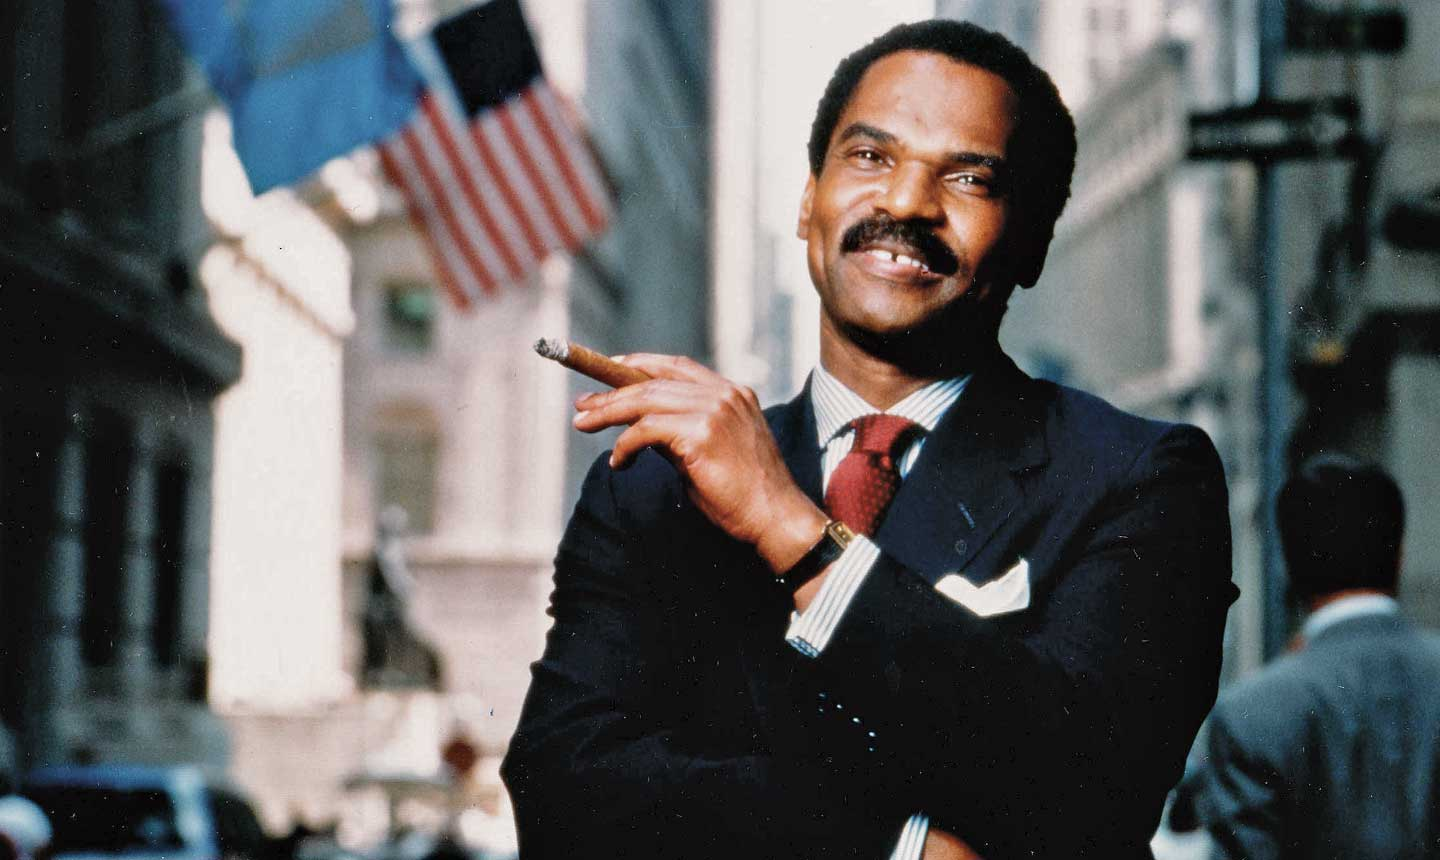 reginald f  lewis  u2013  u0026quot keep going  no matter what  u0026quot